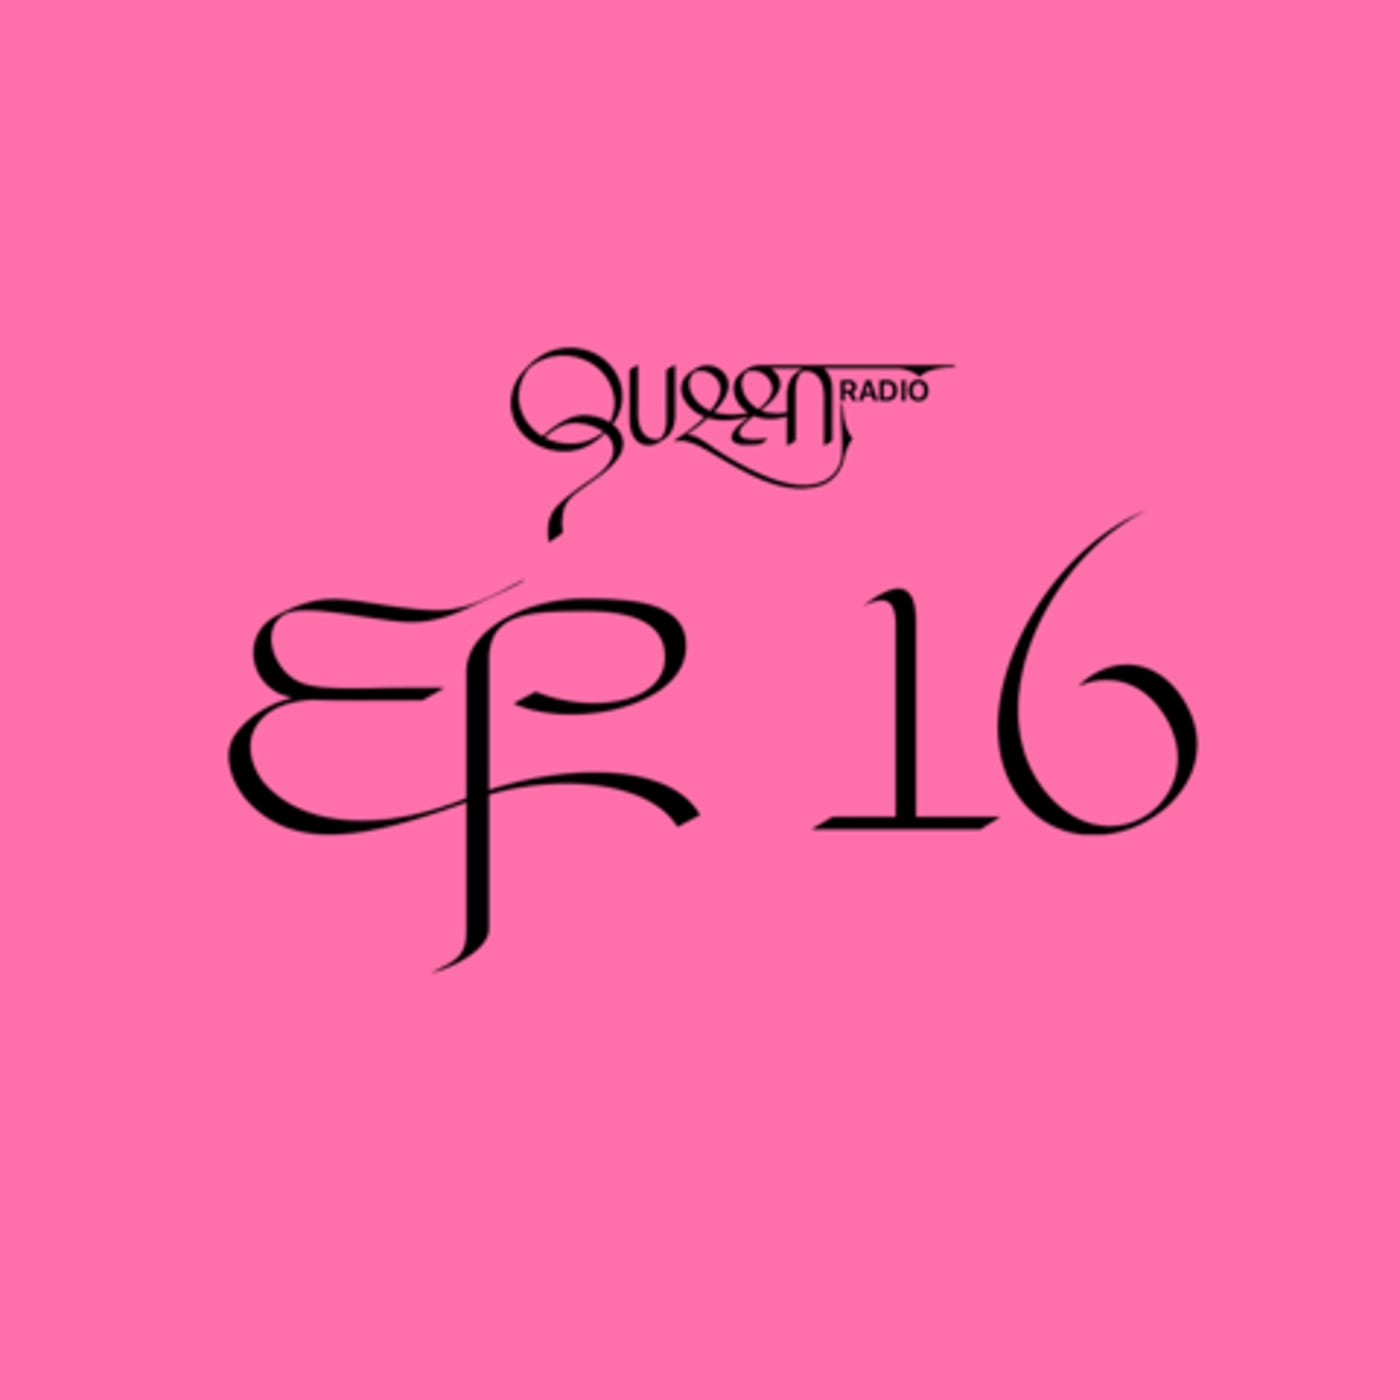 This is a picture of Queen Radio 16.